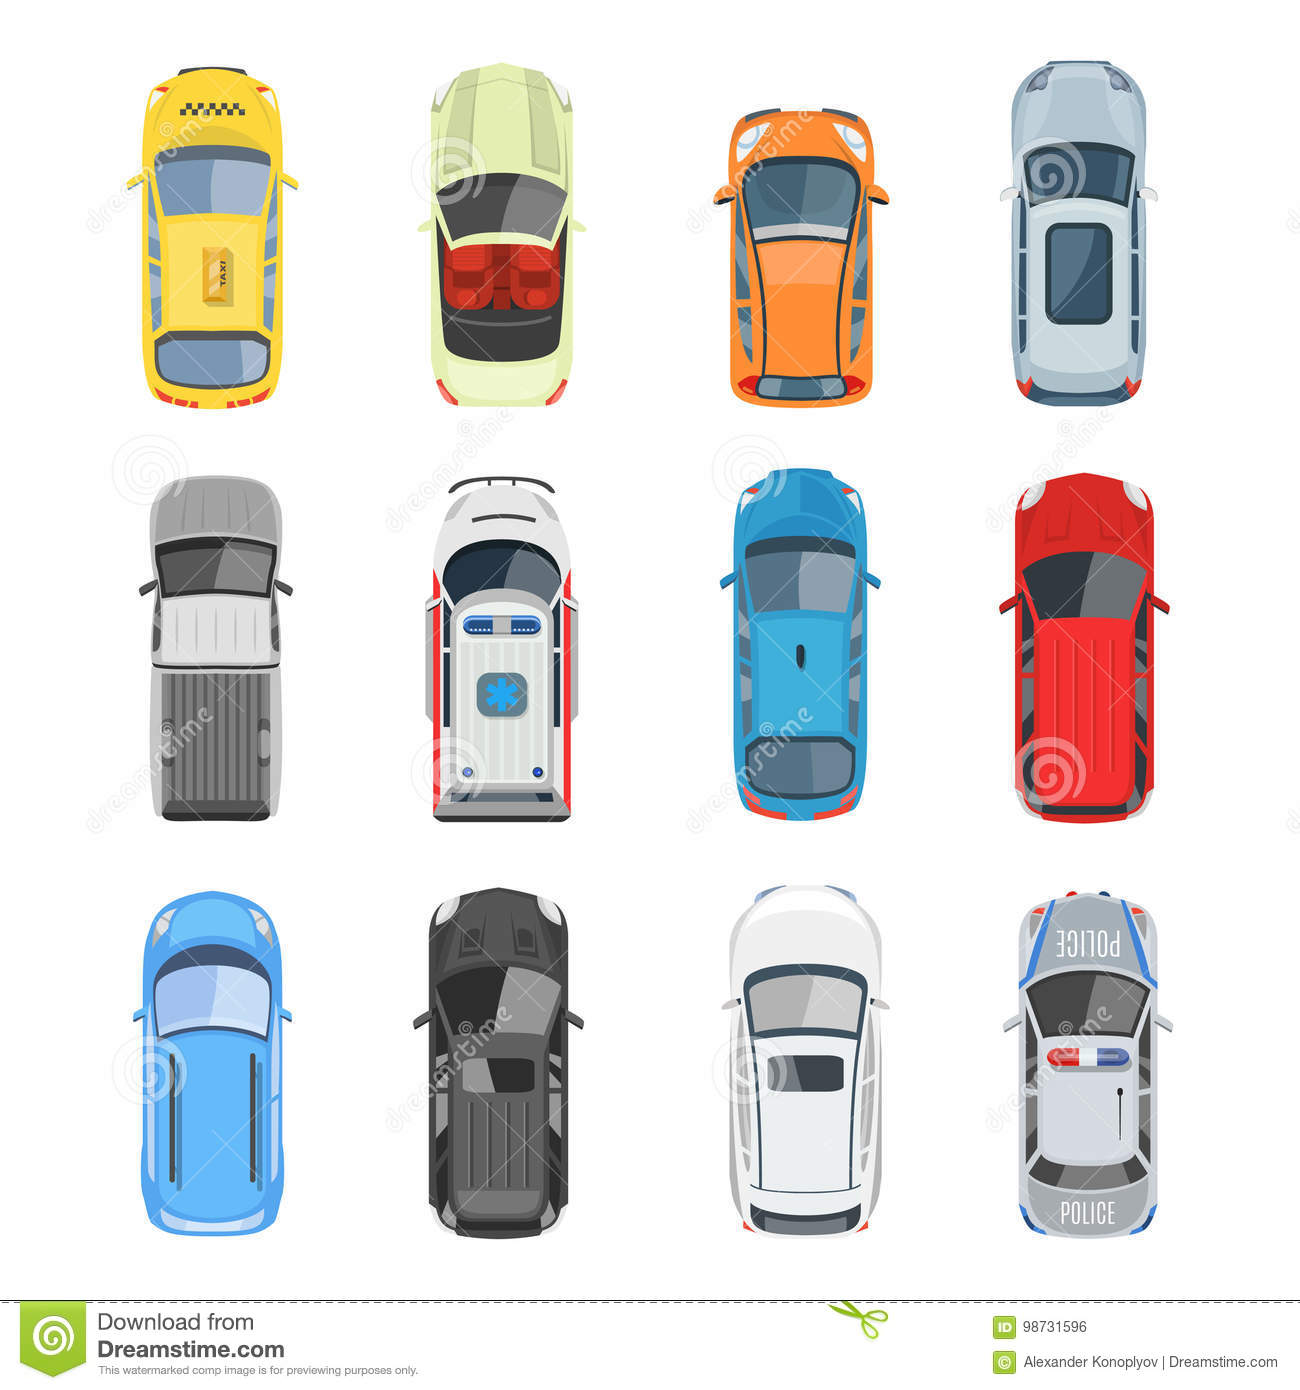 Cars Collection In Top View: Set Of Car Top View Vector Set Stock Vector